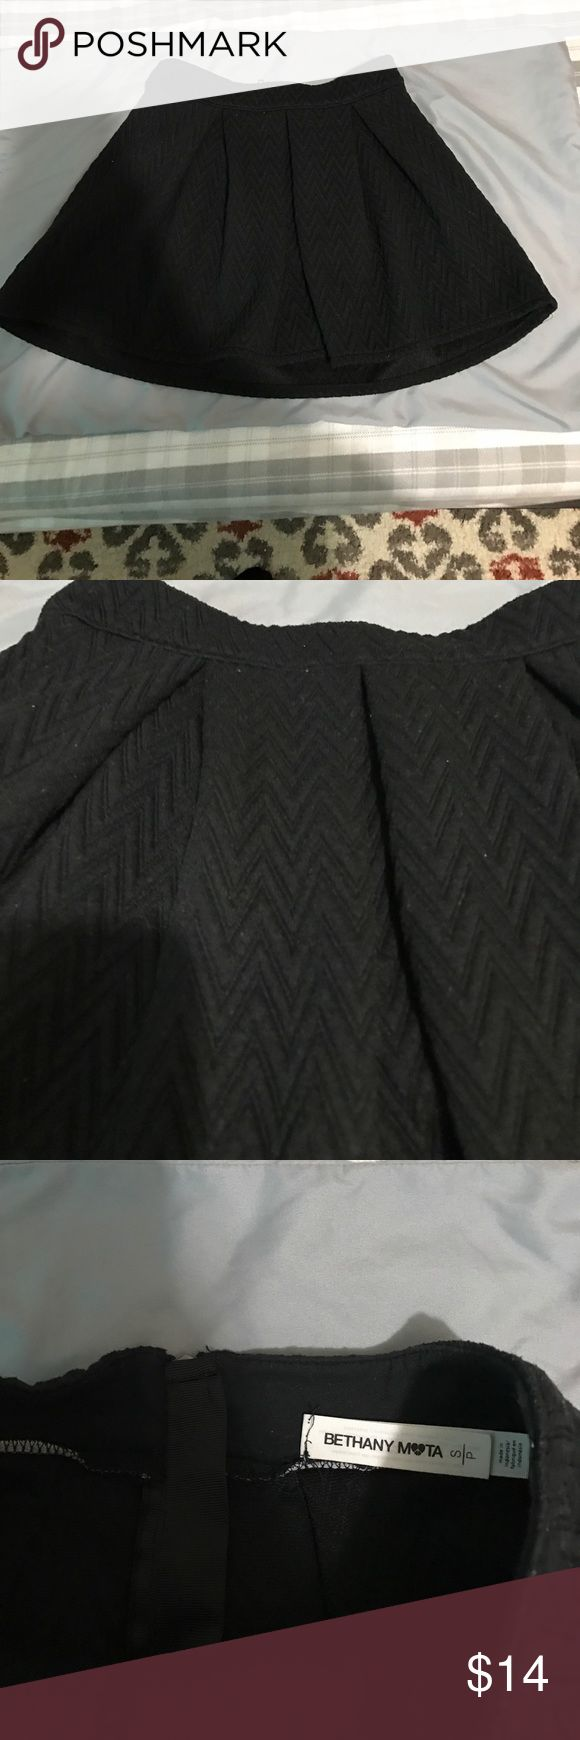 CUTE skater skirt I love this piece but is to small for me now, super soft material, chevron printed design. Smoke free home. bethany mota Skirts Circle & Skater